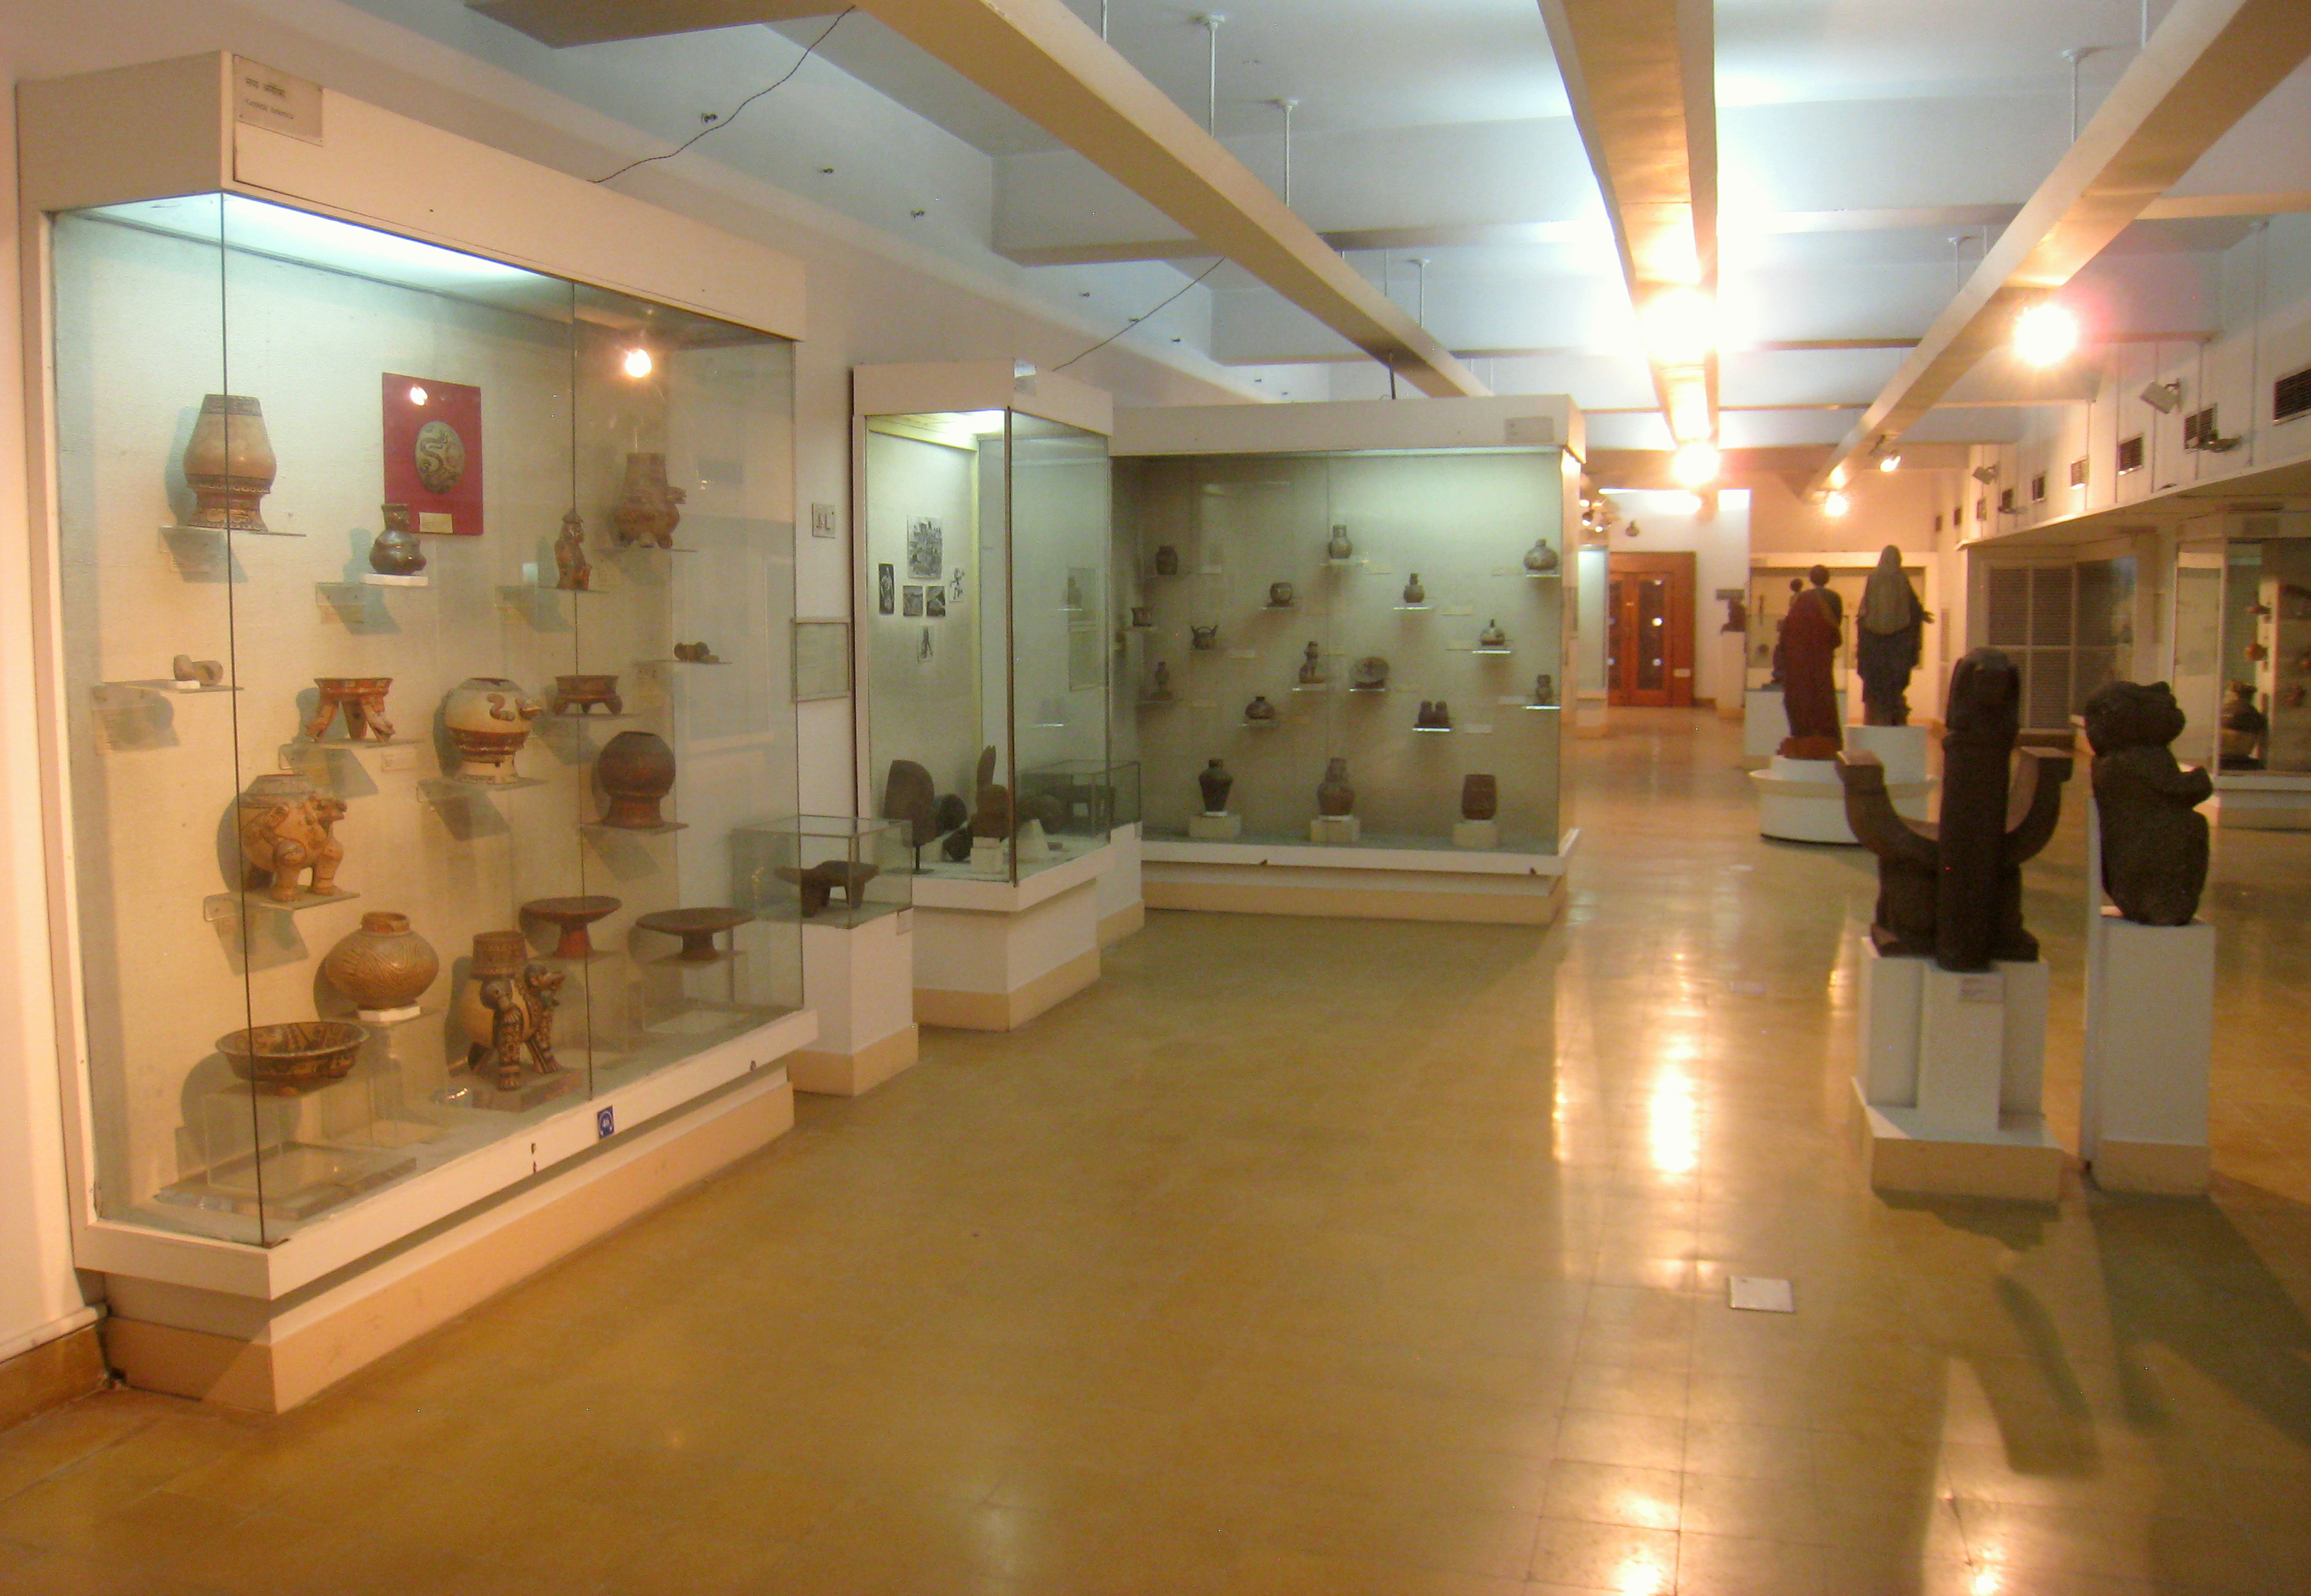 essay on my visit to a museum A museum is a place where antique things and art are preserved so the public can see it those who want to have looked into past can visit museum it offers the visitor a glimpse into the past culture of the city or a country and collection of rare things and things of historical interest.